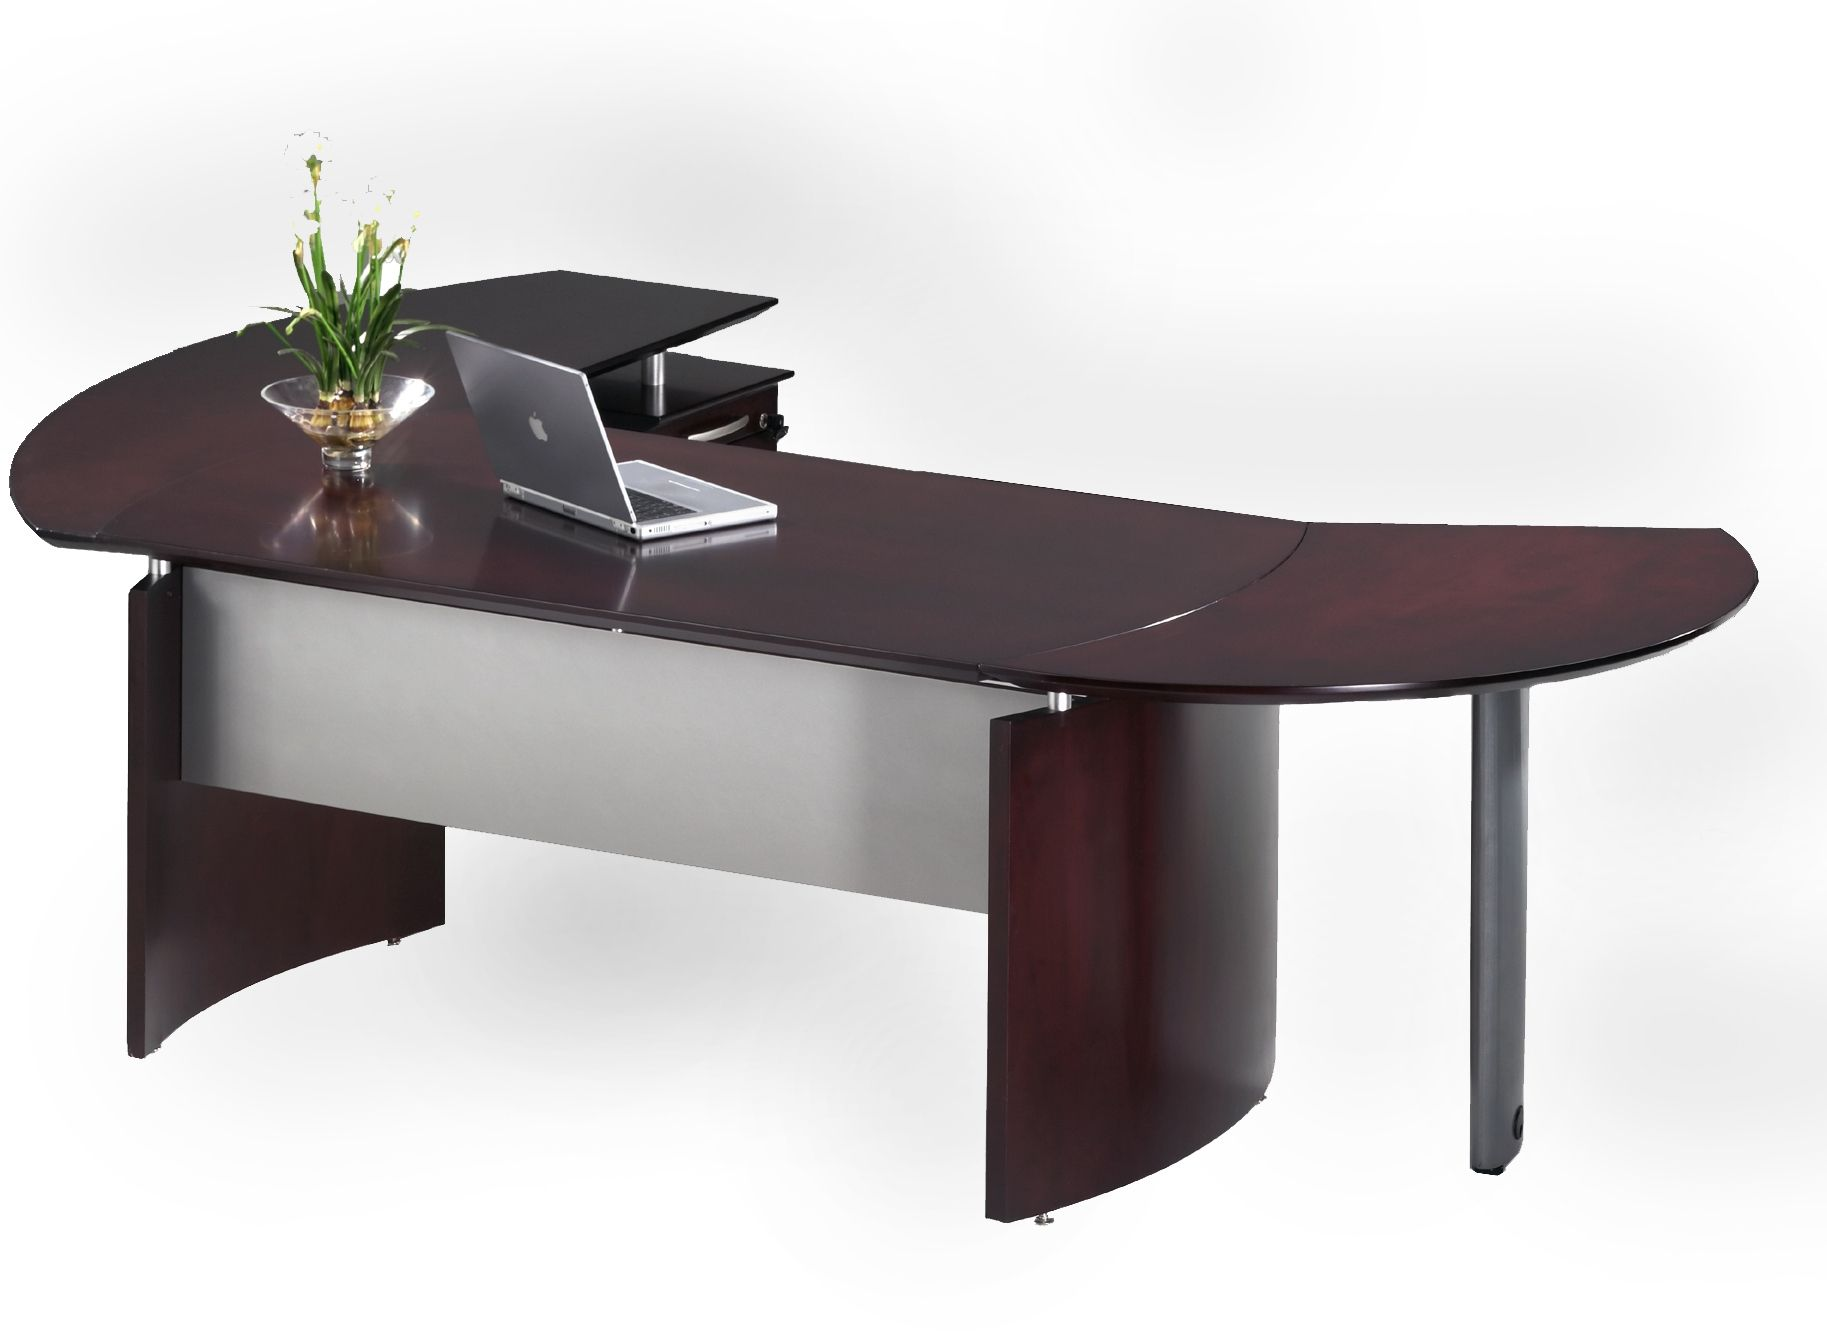 office desk desk office office furniture curved desk modern home